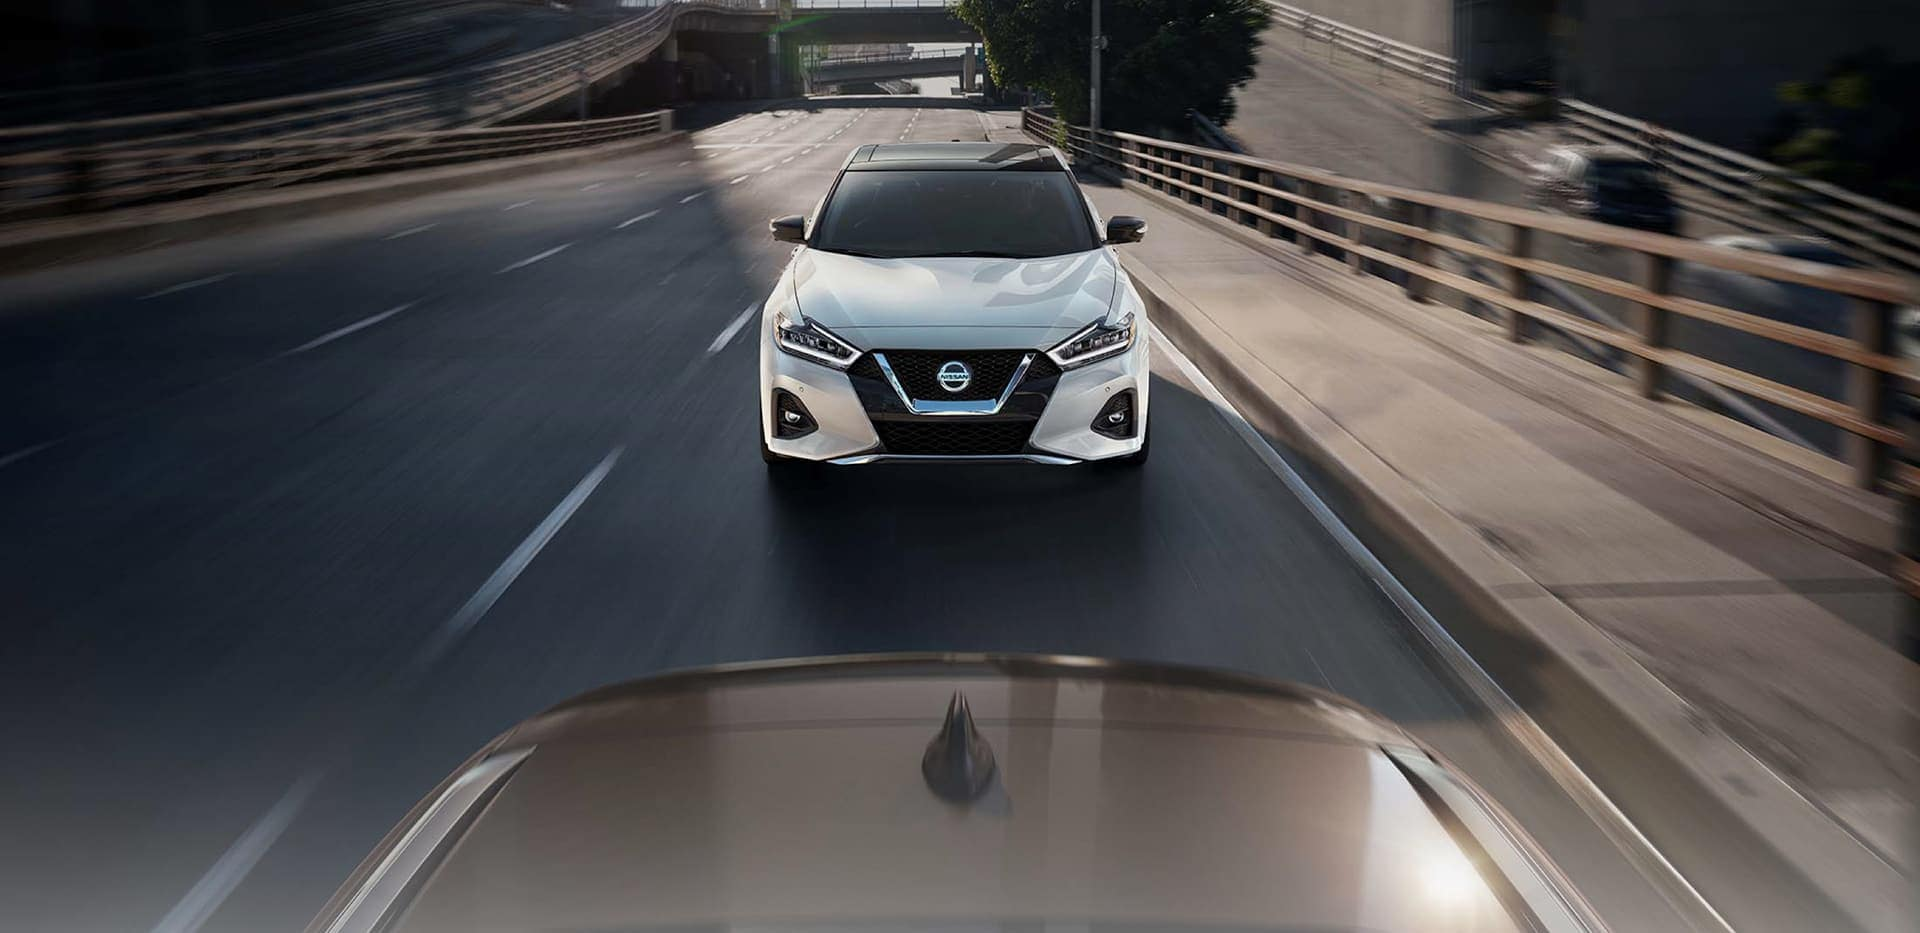 Front view of Nissan driving down street